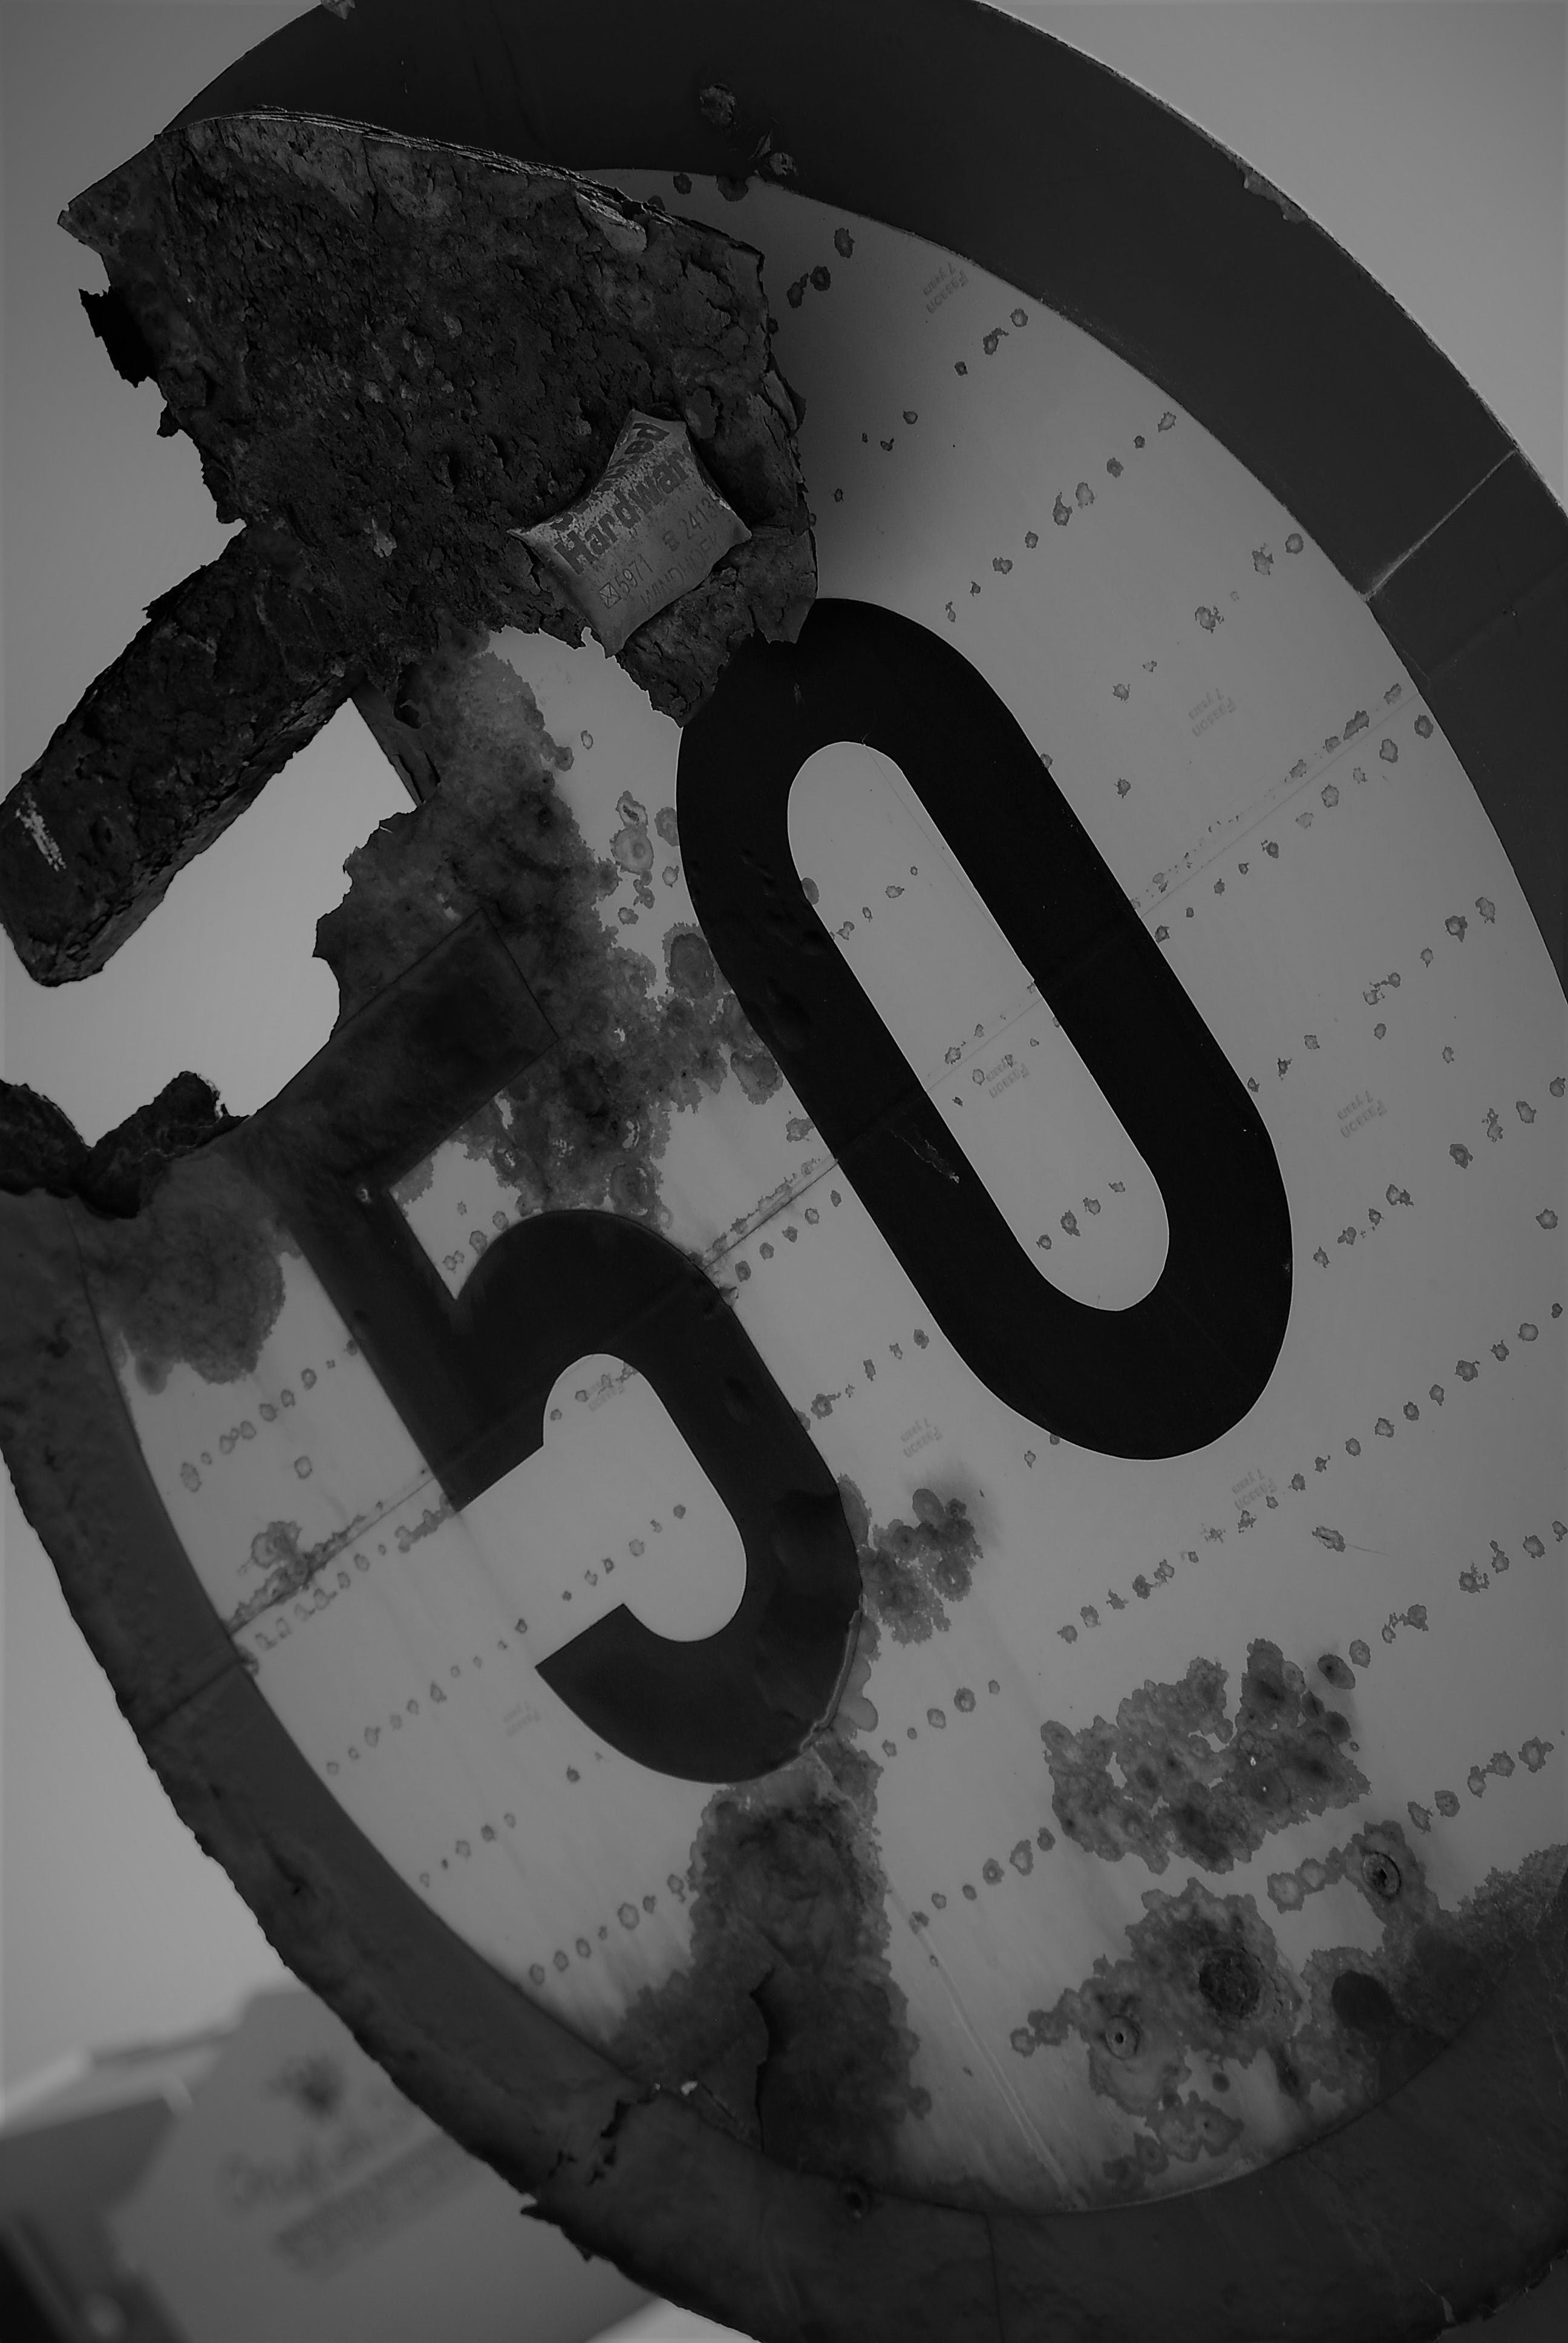 Free stock photo of Black and White Speed Limit 50 Number Old